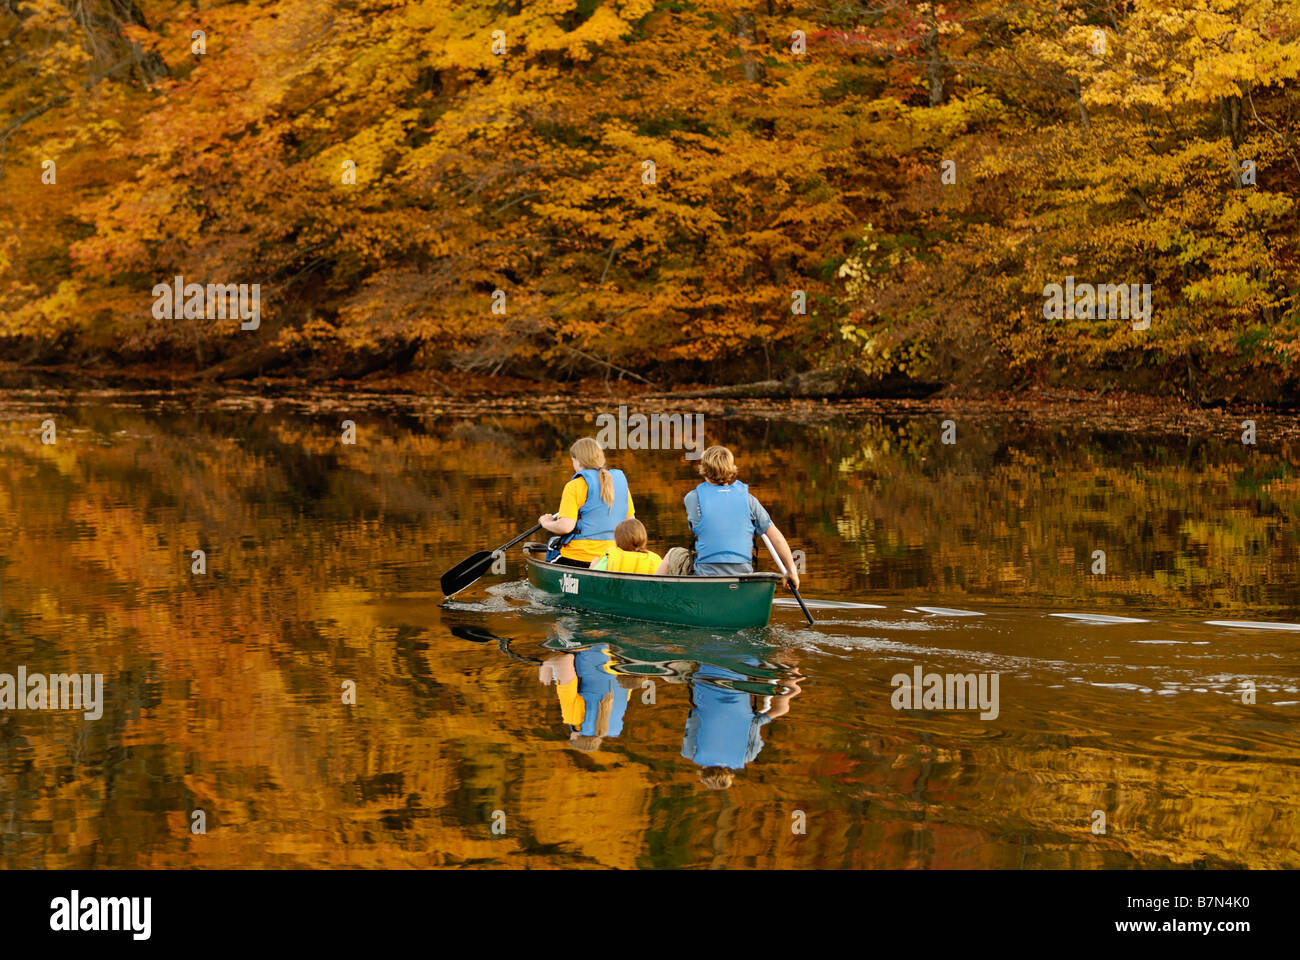 Three Teenagers in Canoe on Forested Lake in Autumn at Mount Saint Francis in Floyd County Indiana - Stock Image